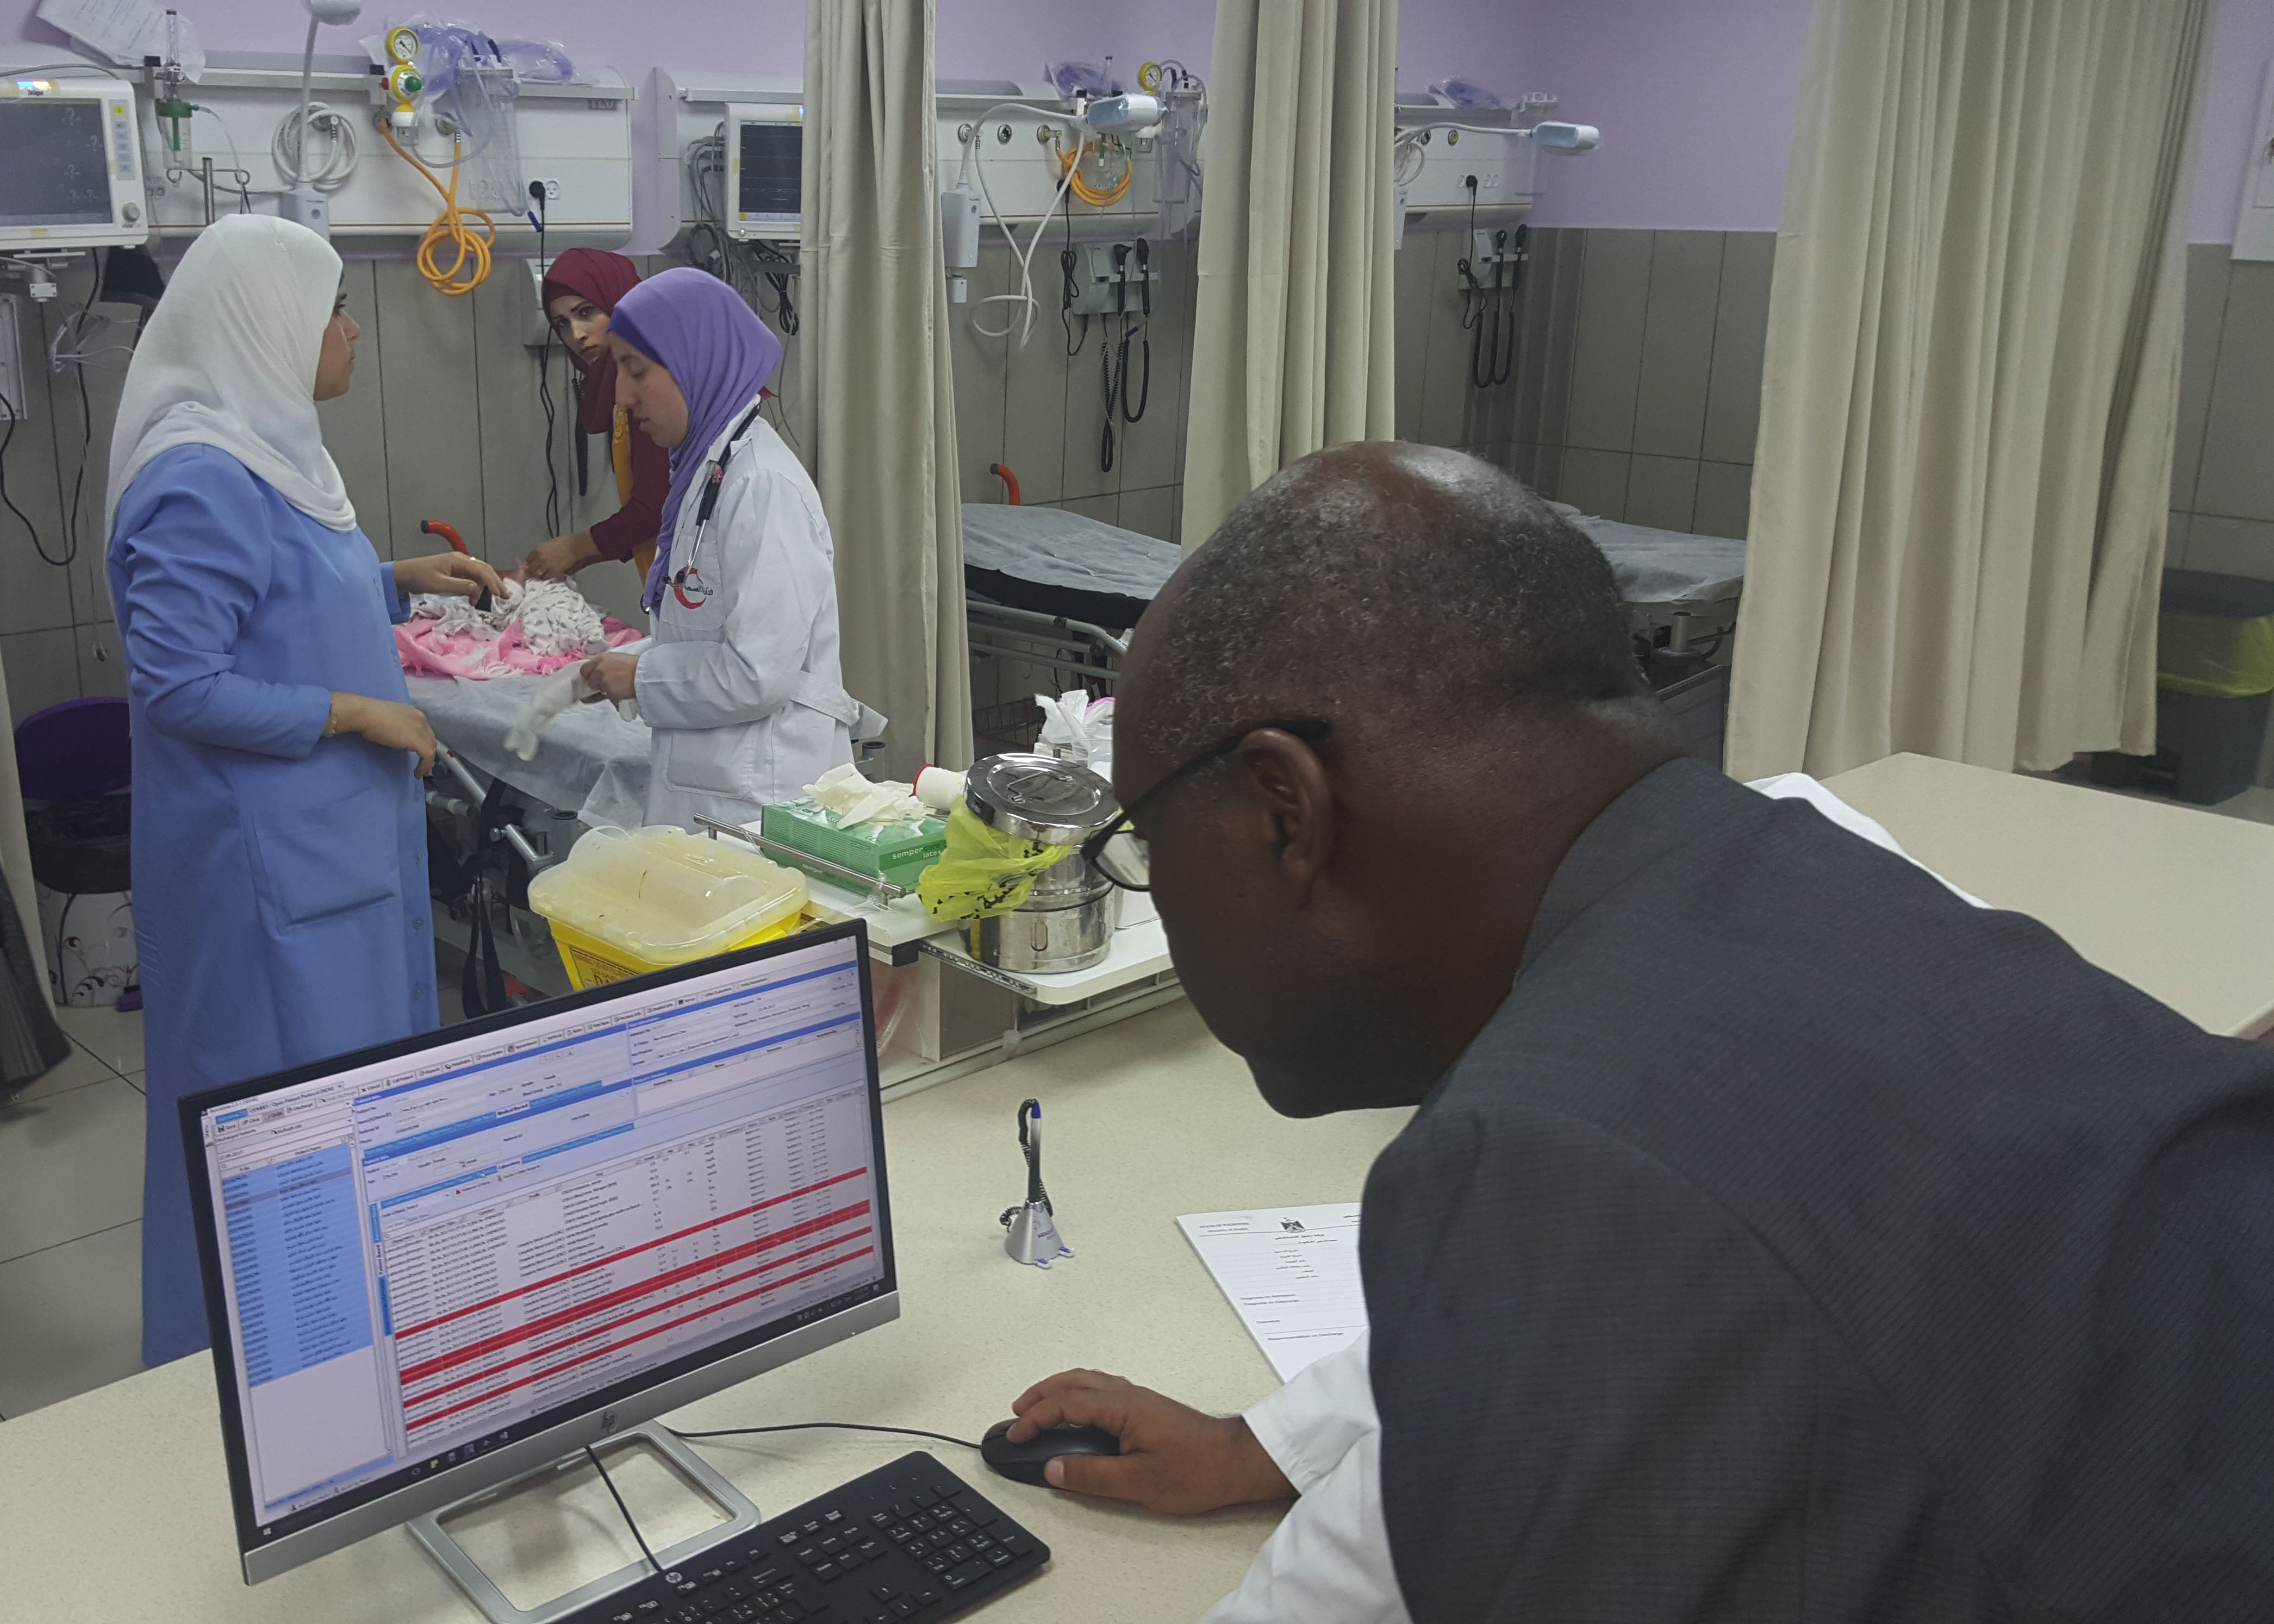 health information system at Palestinian Medical Complex